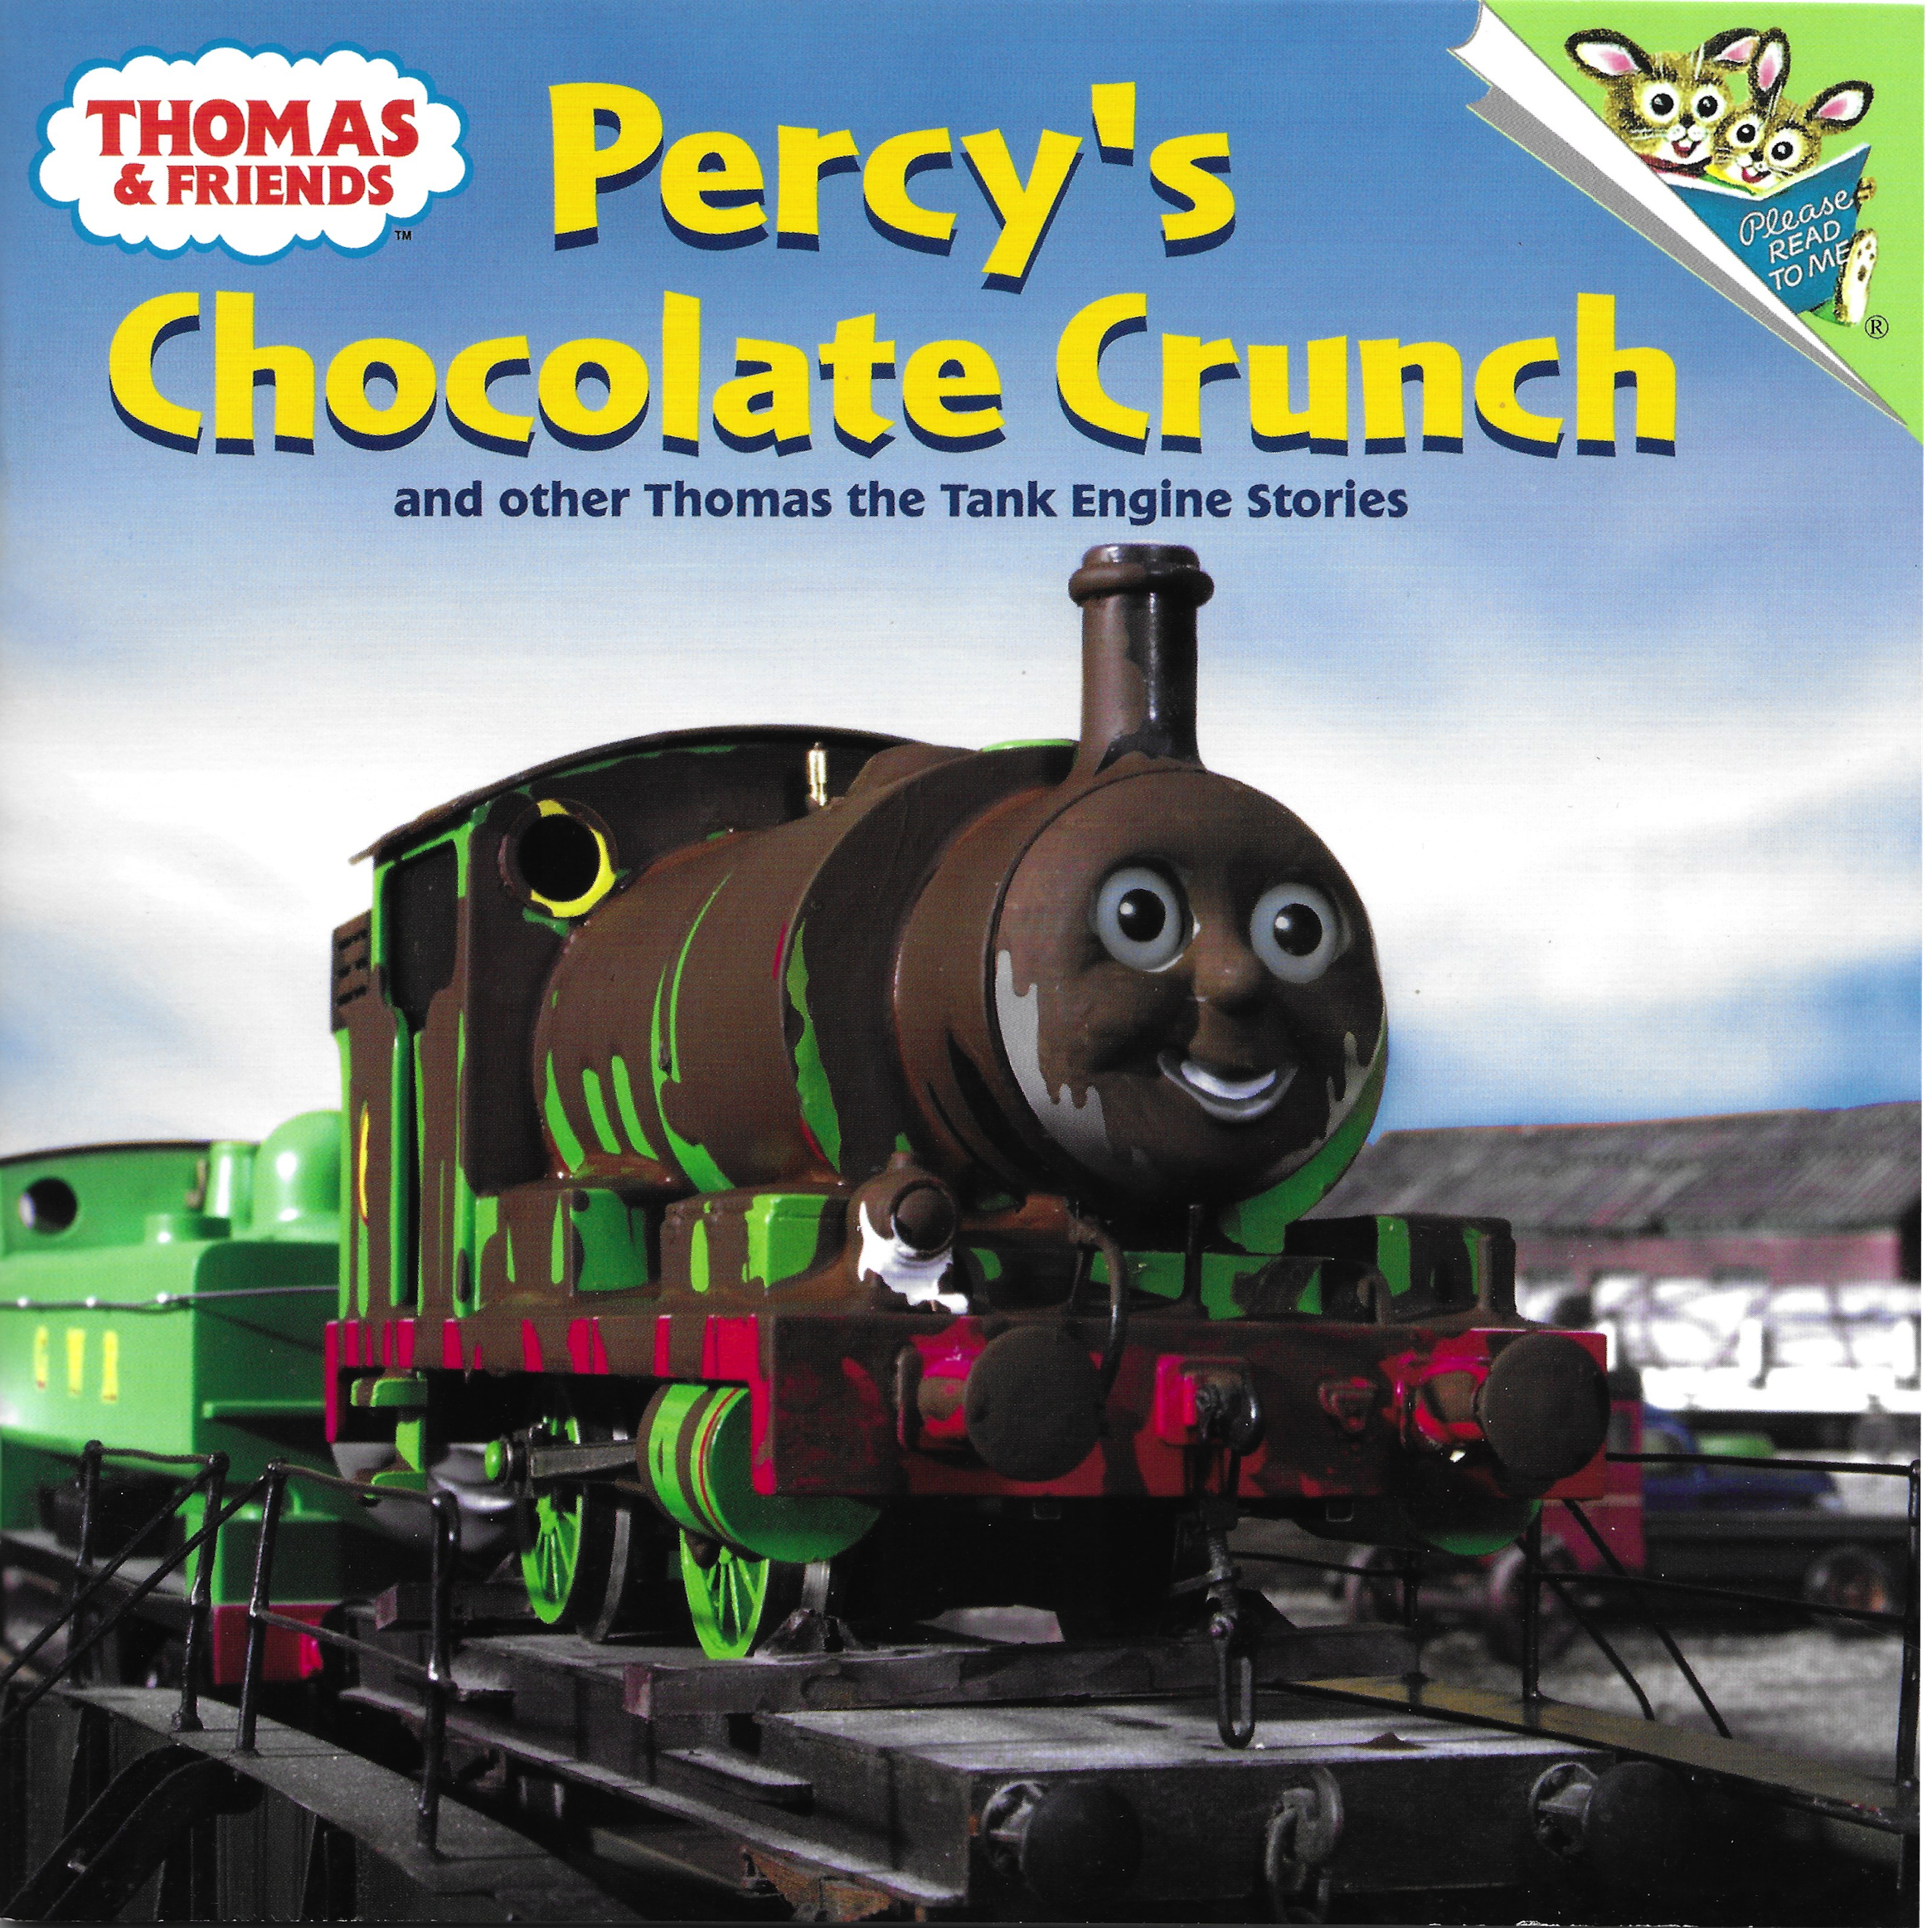 Percy's Chocolate Crunch and other Thomas the Tank Engine Stories